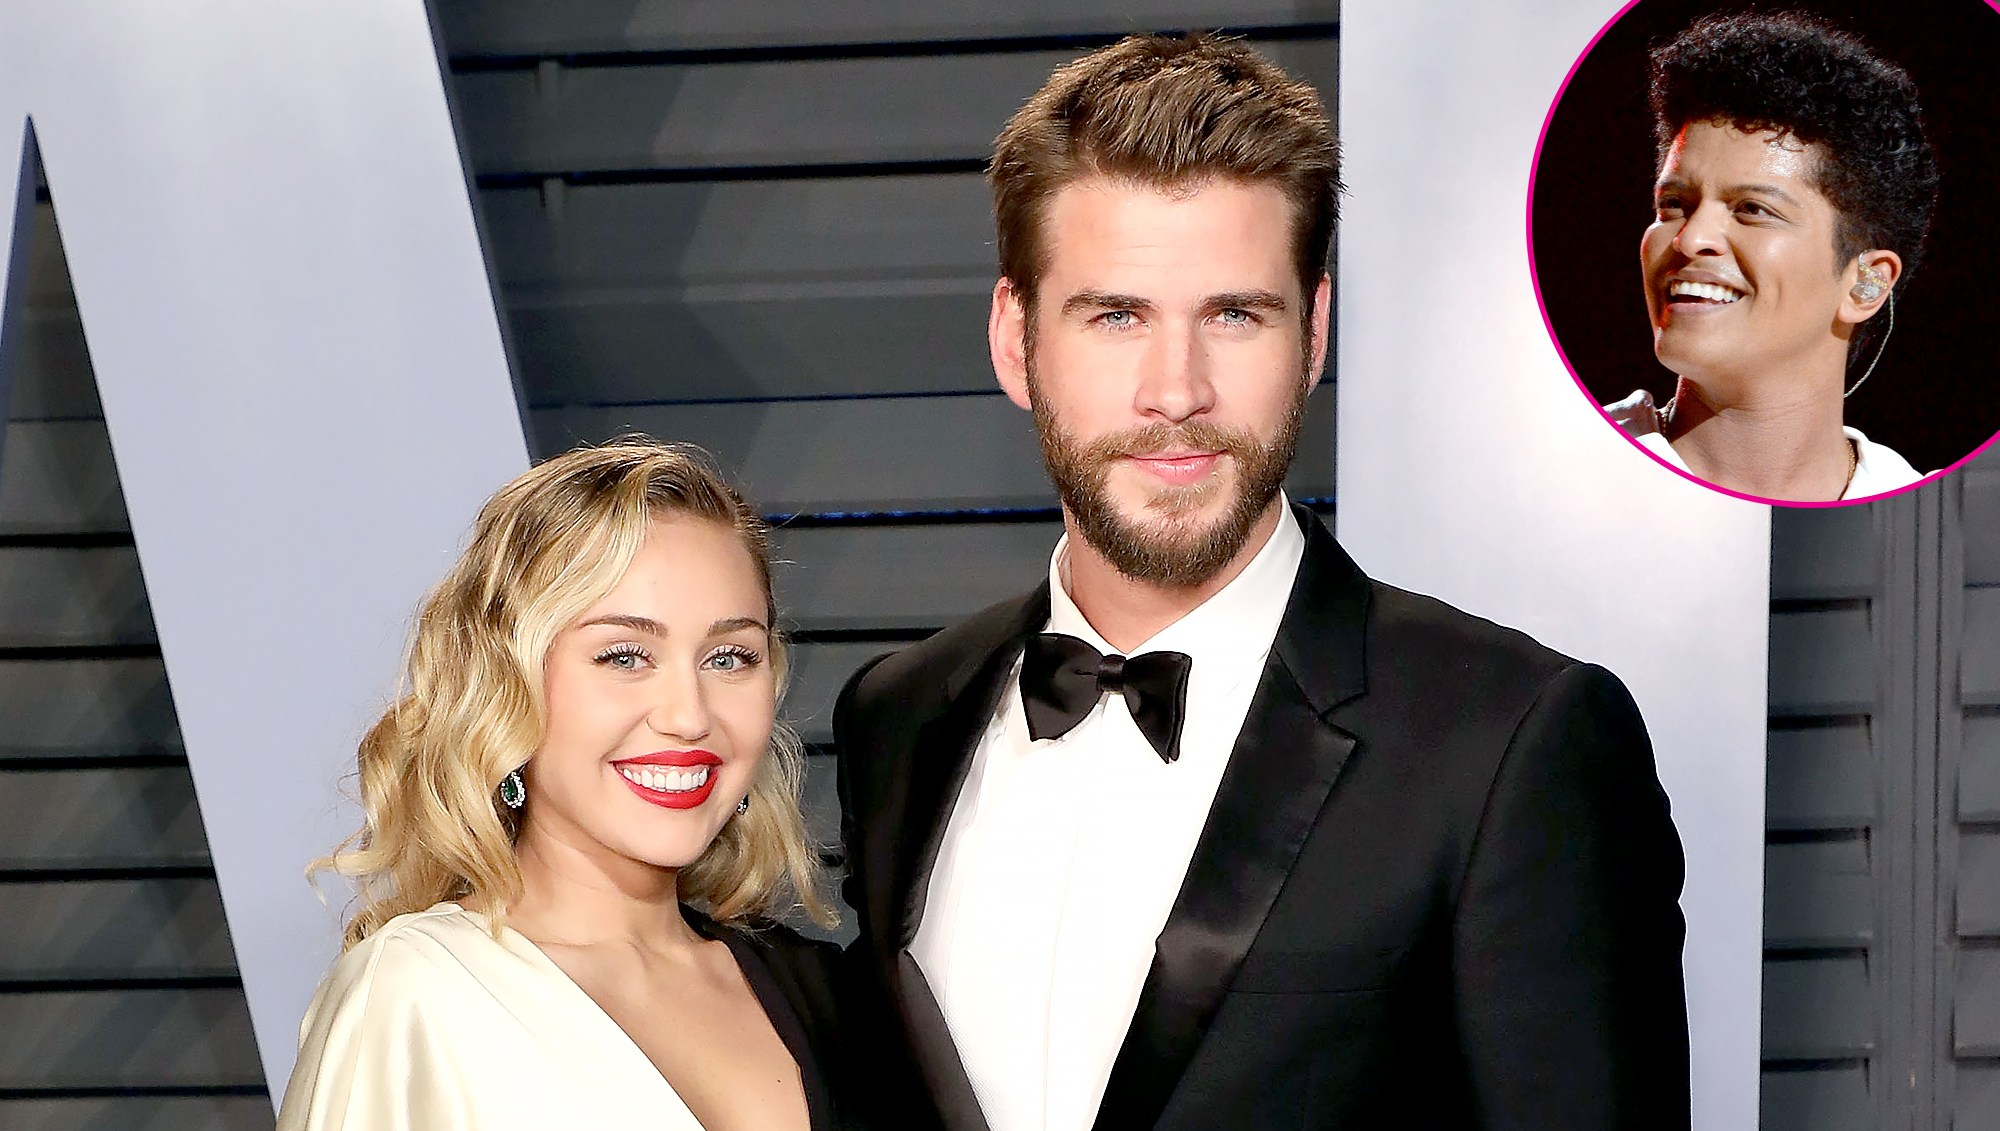 Miley Cyrus dances to Bruno Mars at wedding with Liam Hemsworth